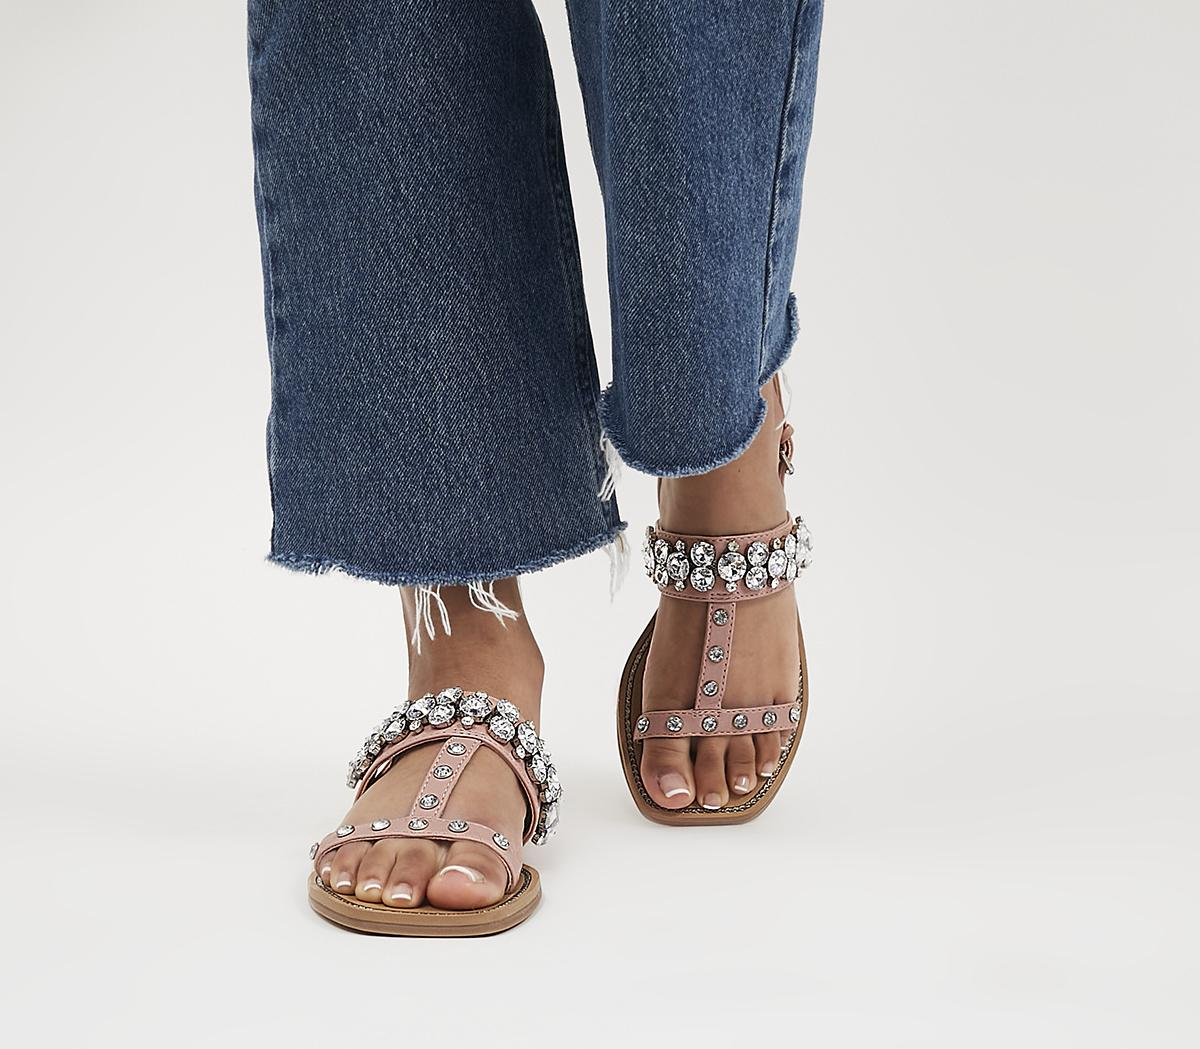 Seemly Two Part T-Bar Sandals